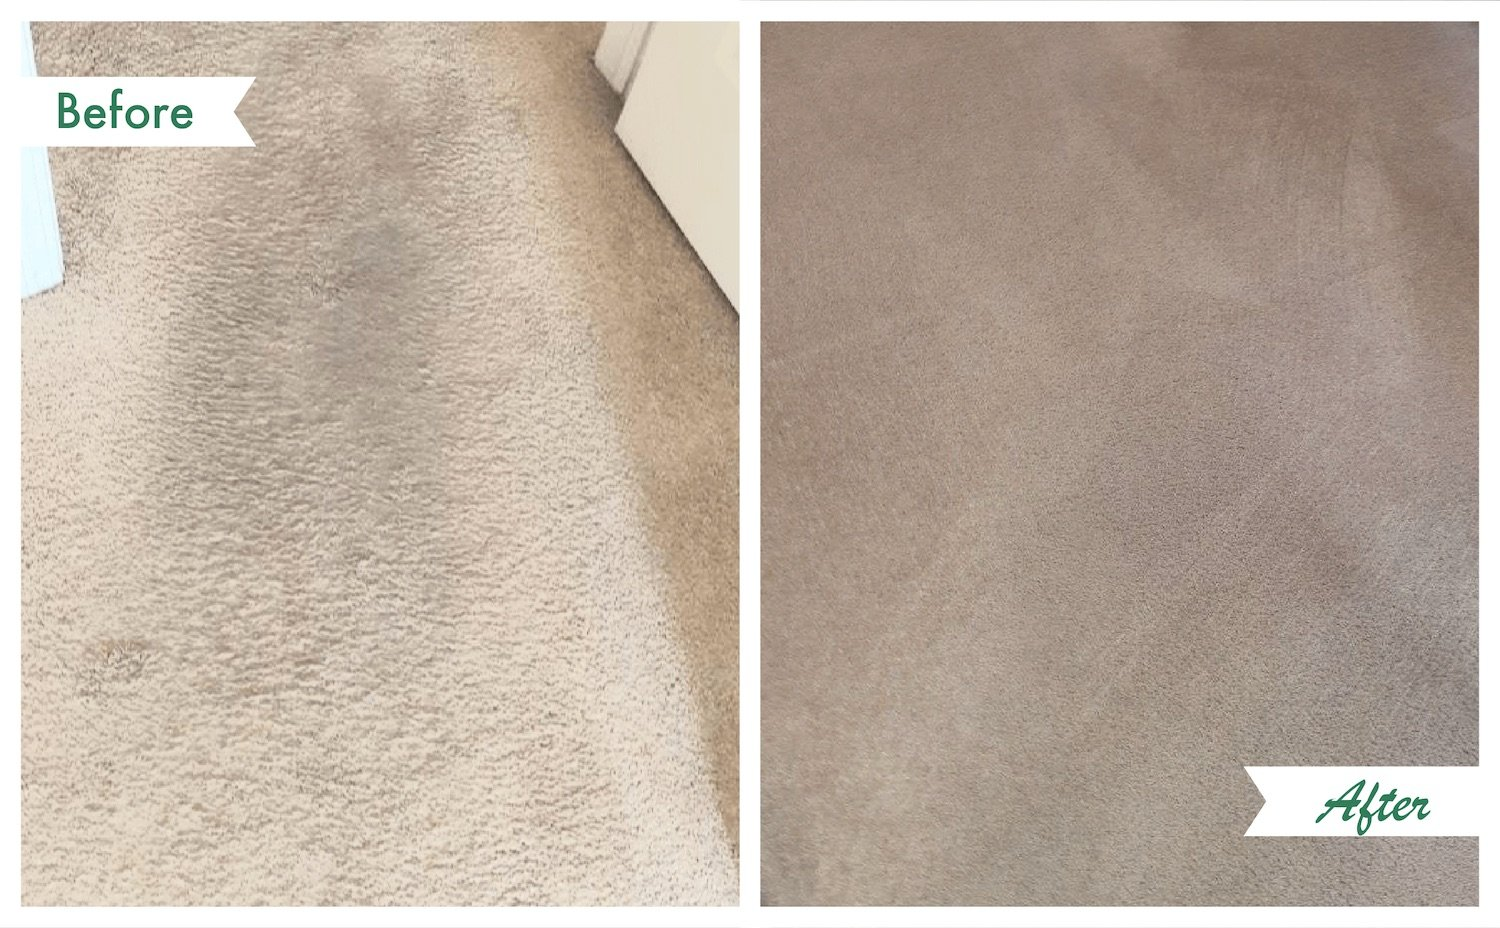 a before and after shot of a carpet we cleaned.